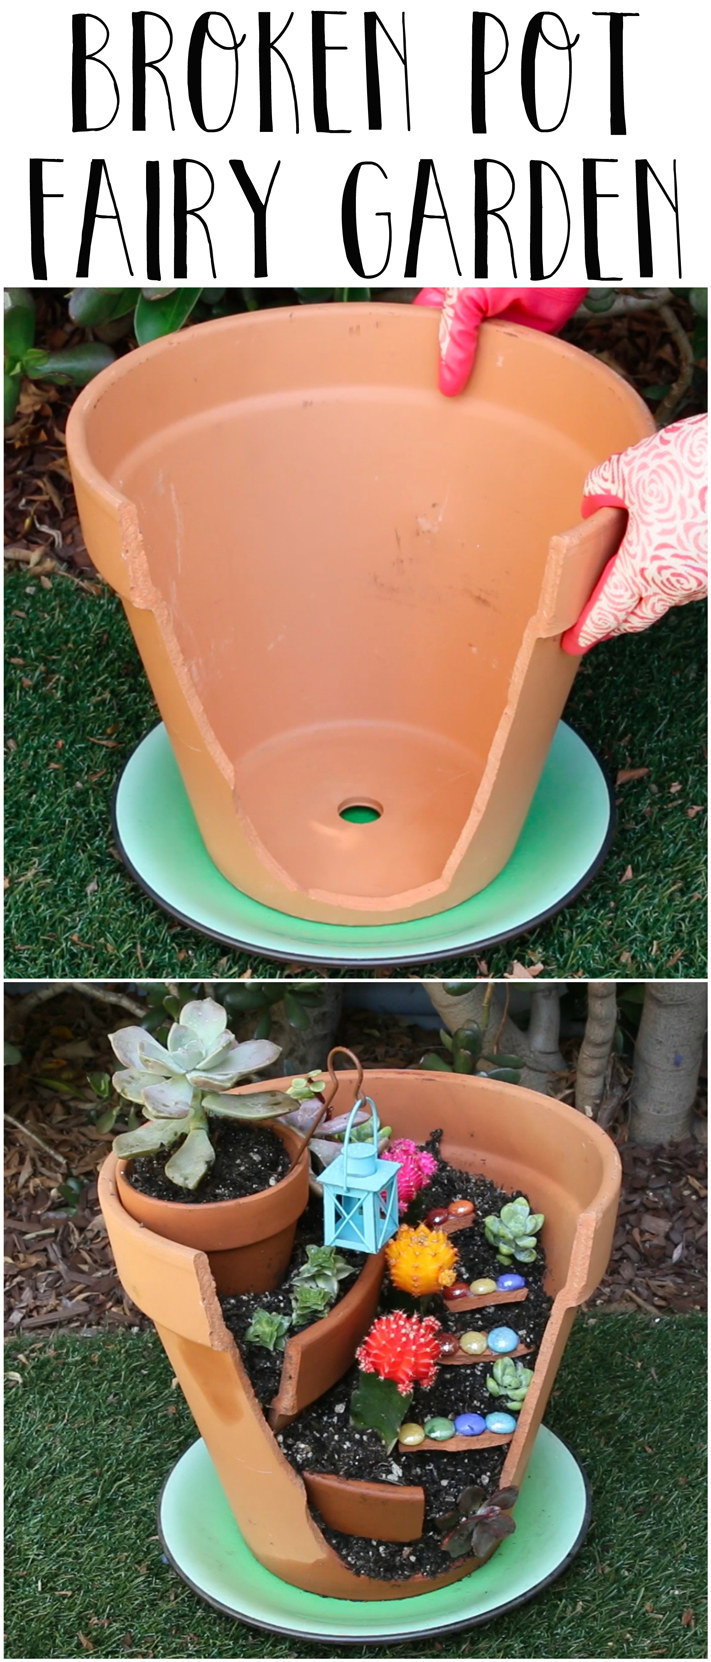 Give Your Broken Pots A Magical